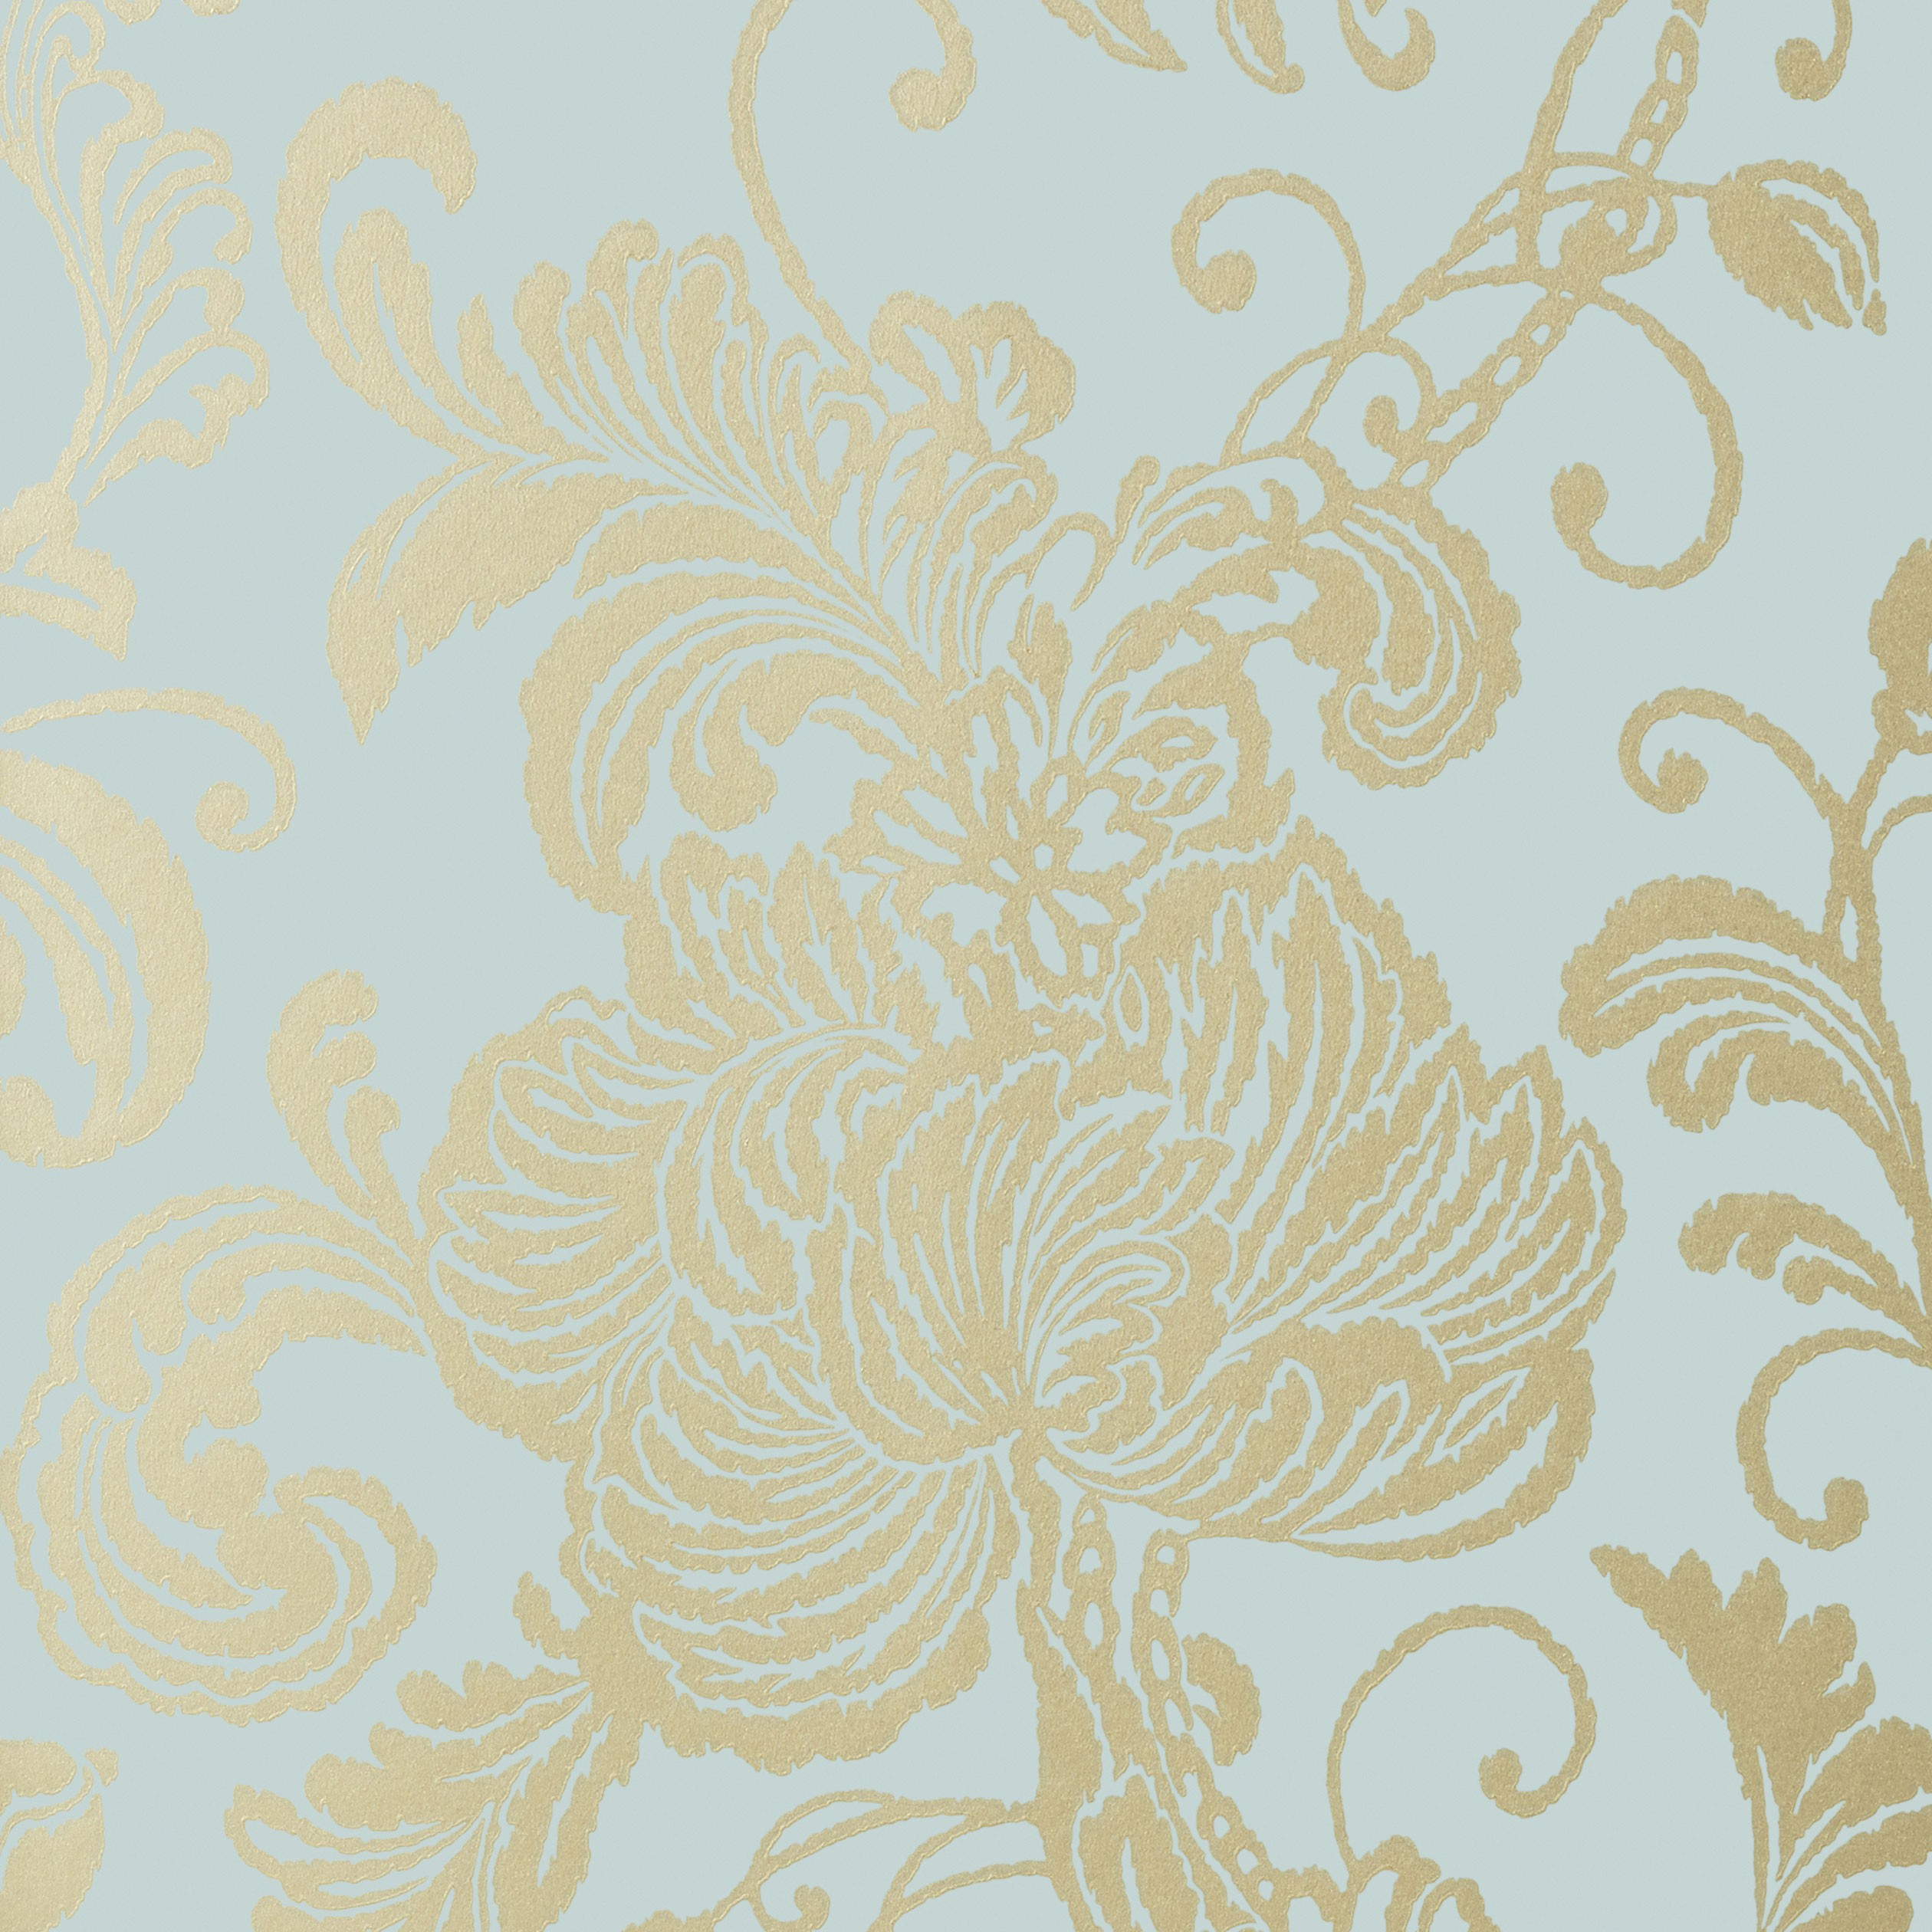 Verey Floral Damask Metallic Gold On Aqua Blue Af At6010